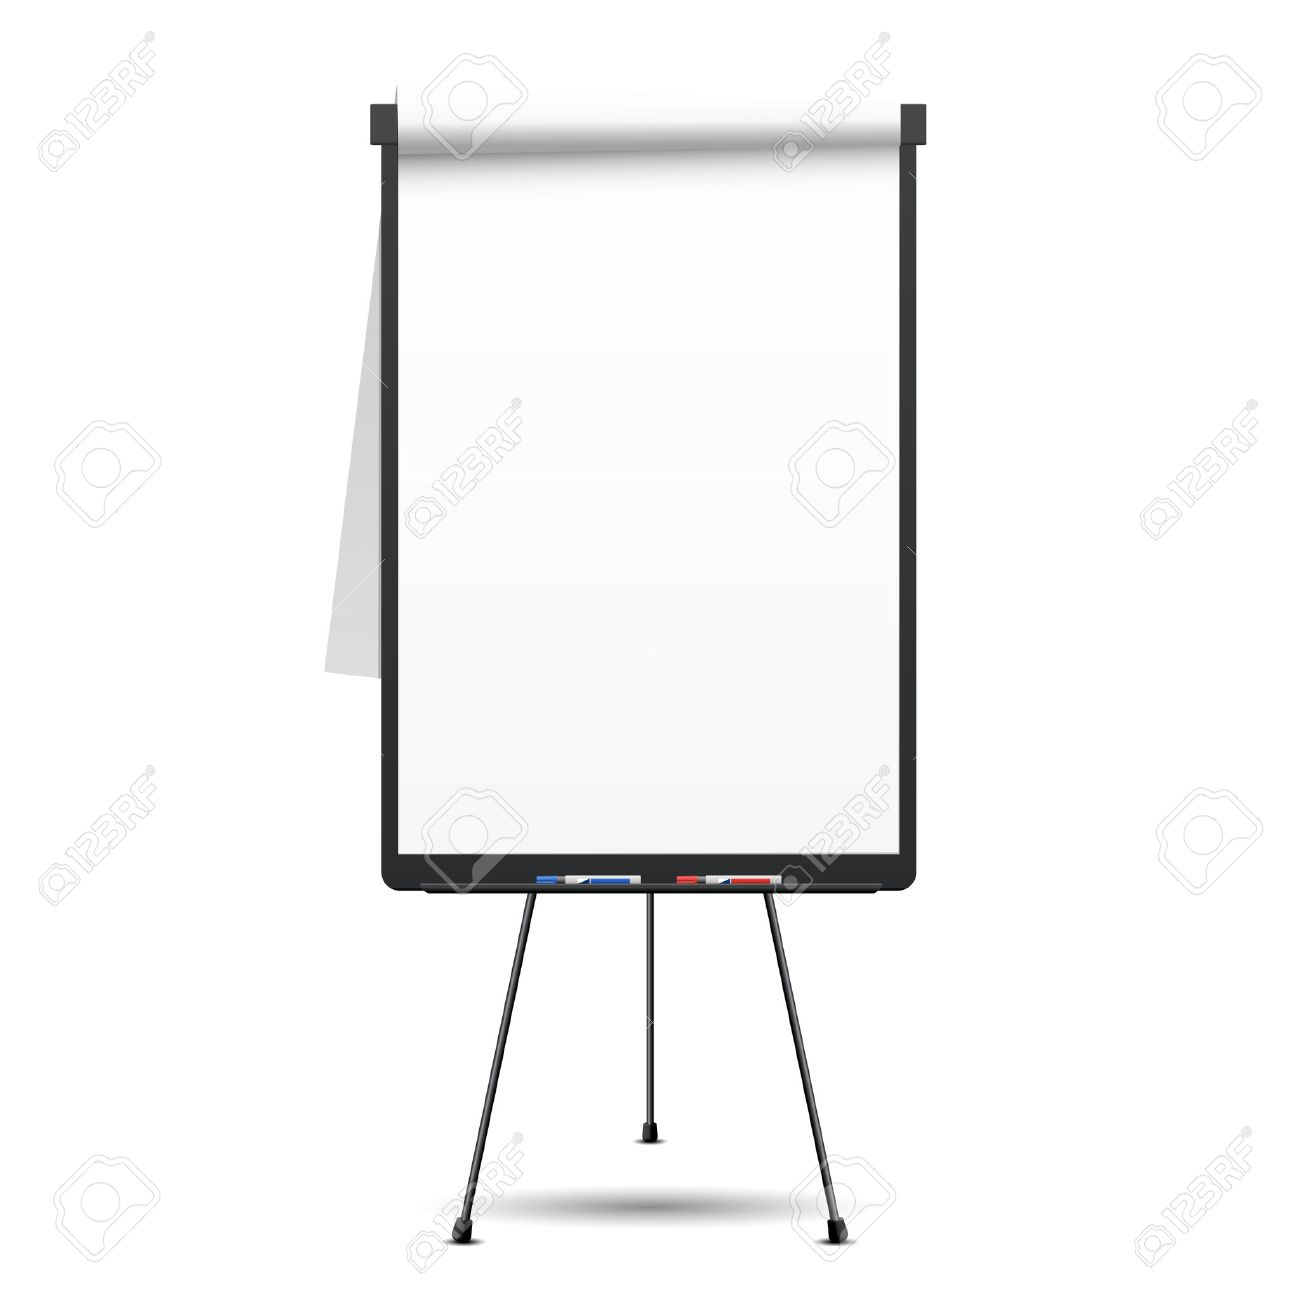 Blank Flip Chart. Whiteboard And Empty Paper, Presentation And ...